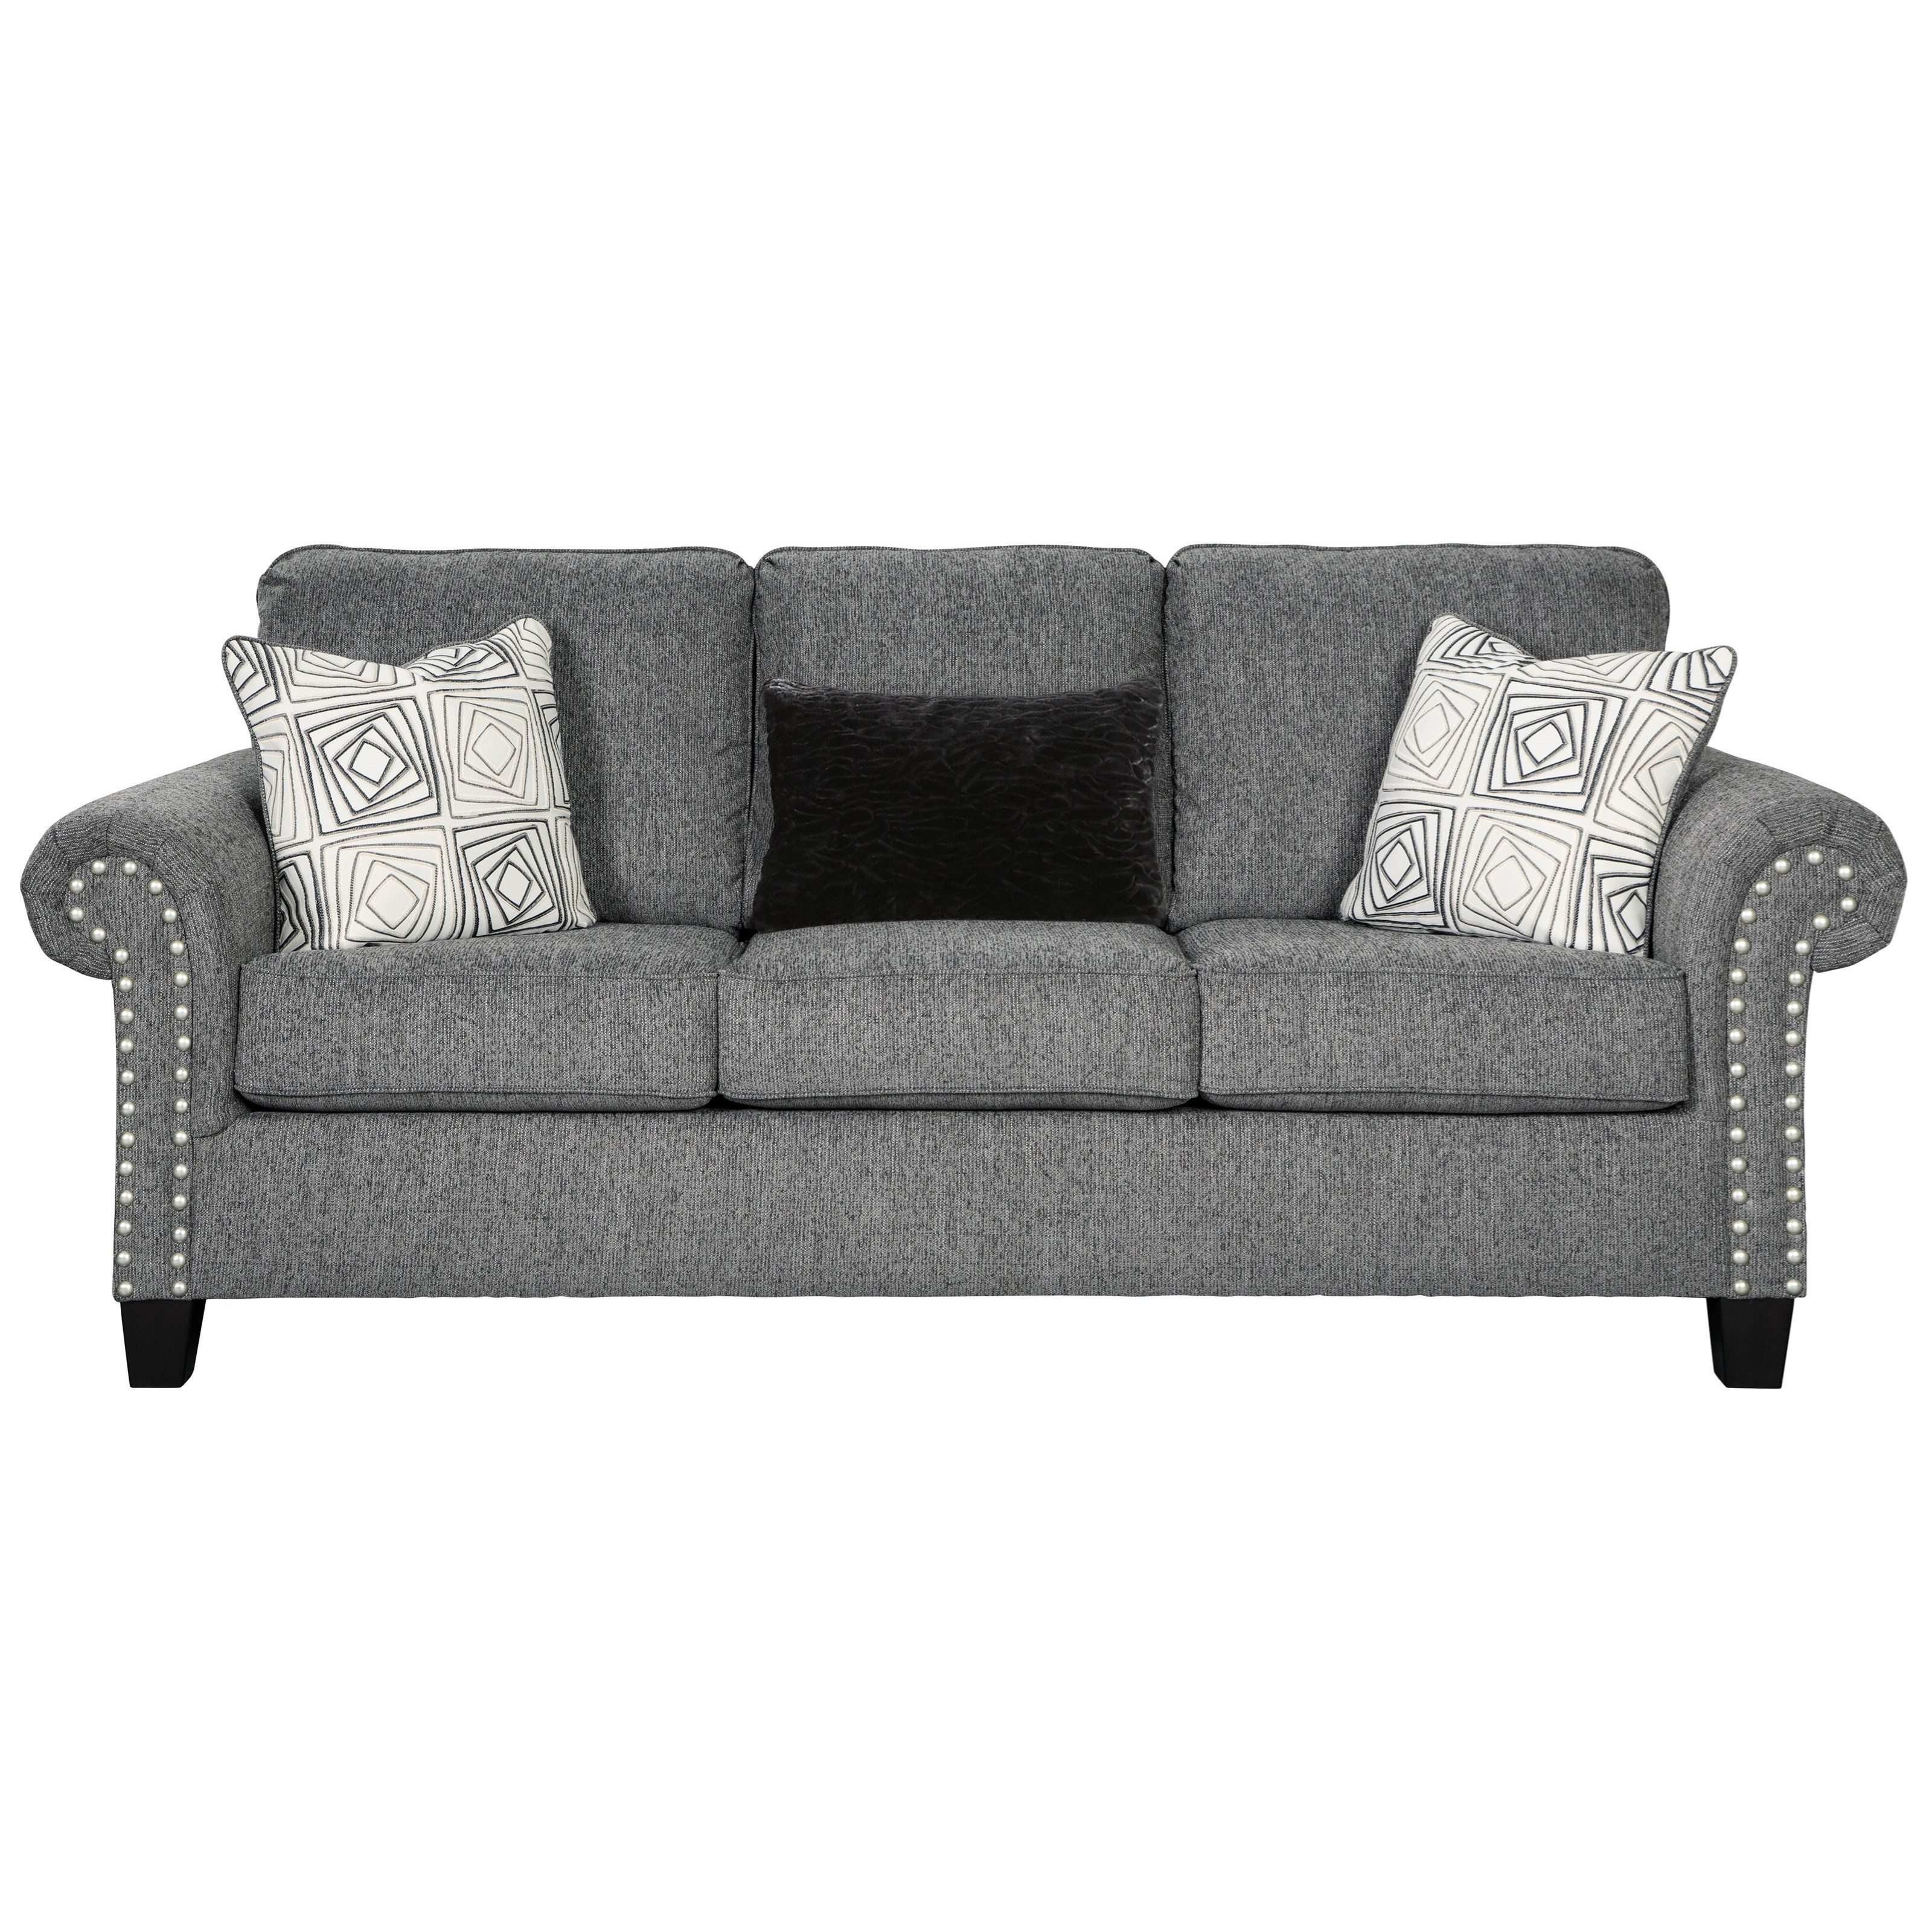 Agleno Sofa by Benchcraft at Value City Furniture